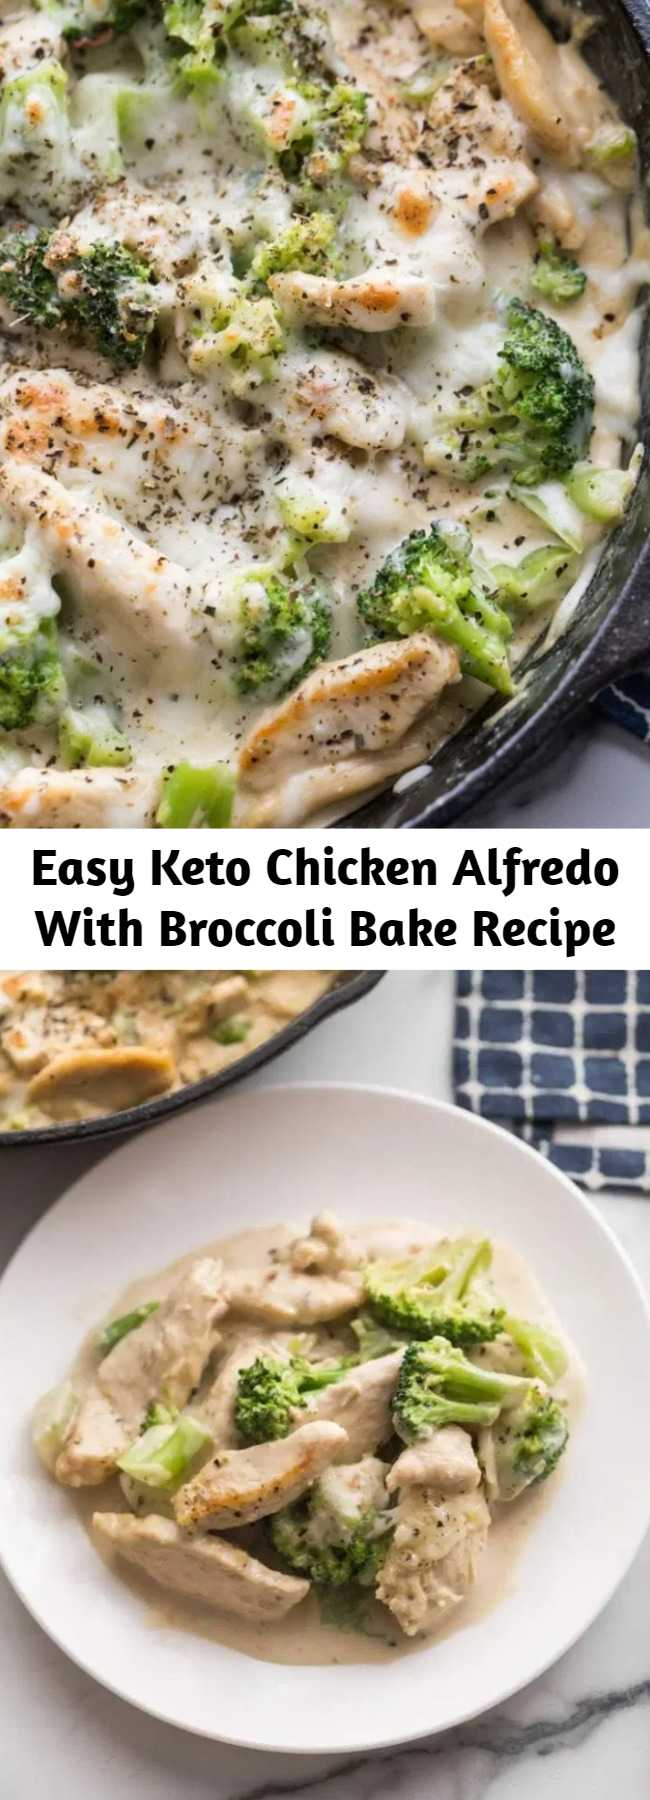 Easy Keto Chicken Alfredo With Broccoli Bake Recipe - If you miss alfredo, look no further. Creamy Keto Chicken Alfredo with Broccoli Bake is the ultimate comfort food that is easy to make, low carb, and delicious. In under 30 minutes, you'll have a wonderful meal on the table with little effort.